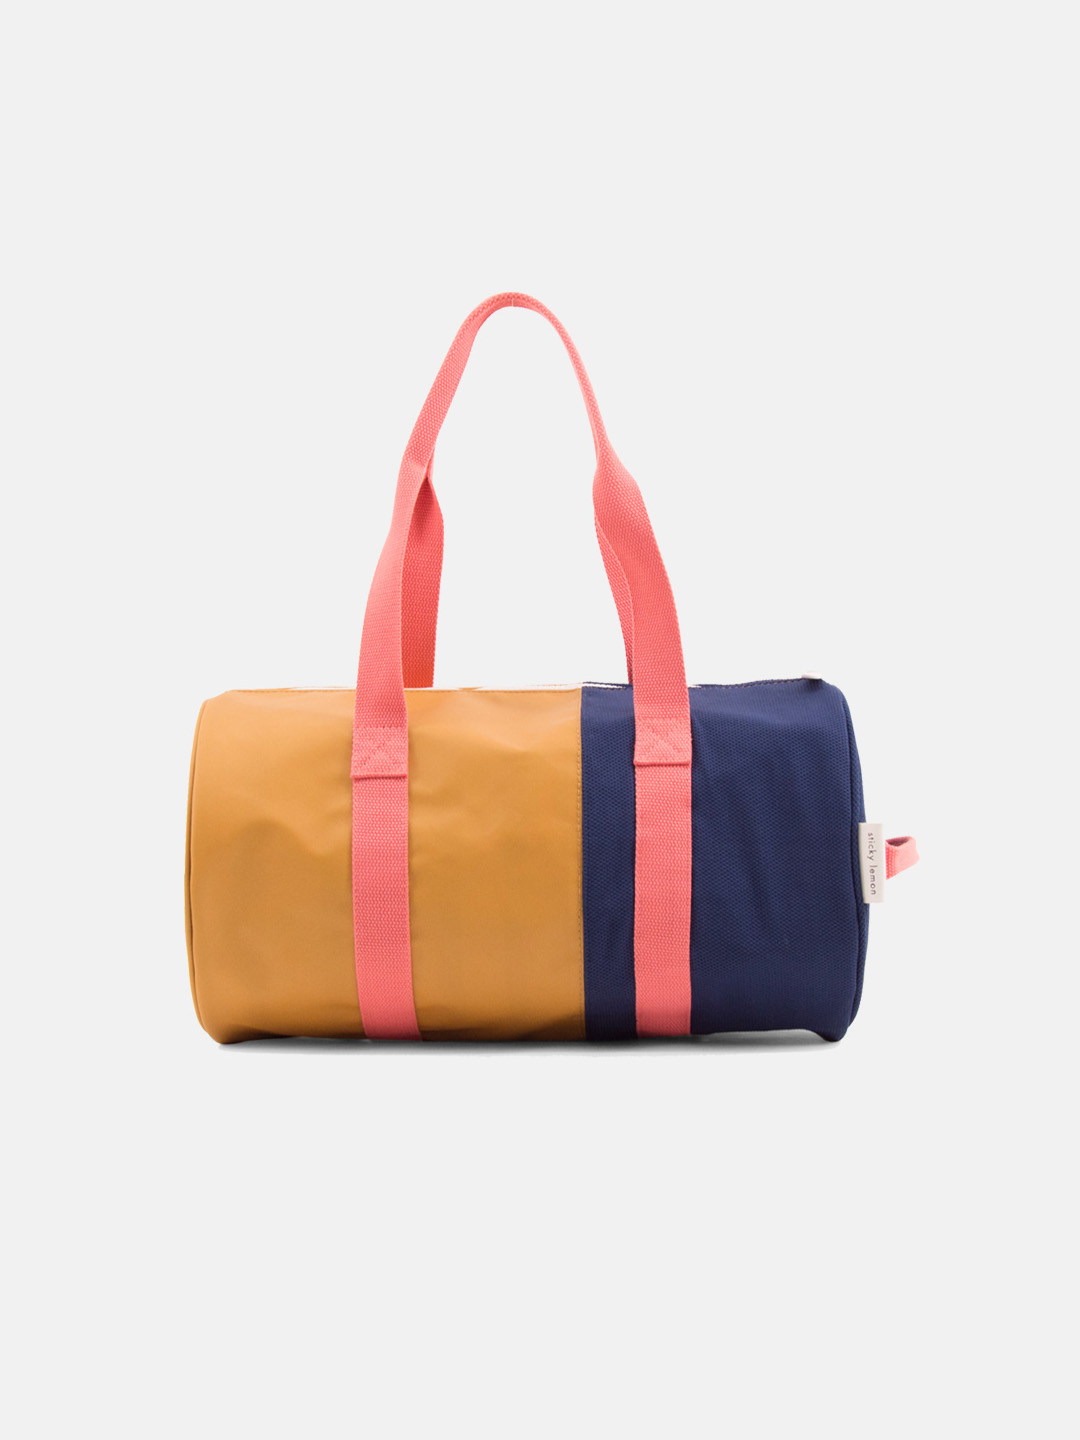 Duffle bag - vertical fudge caramel & dark blue